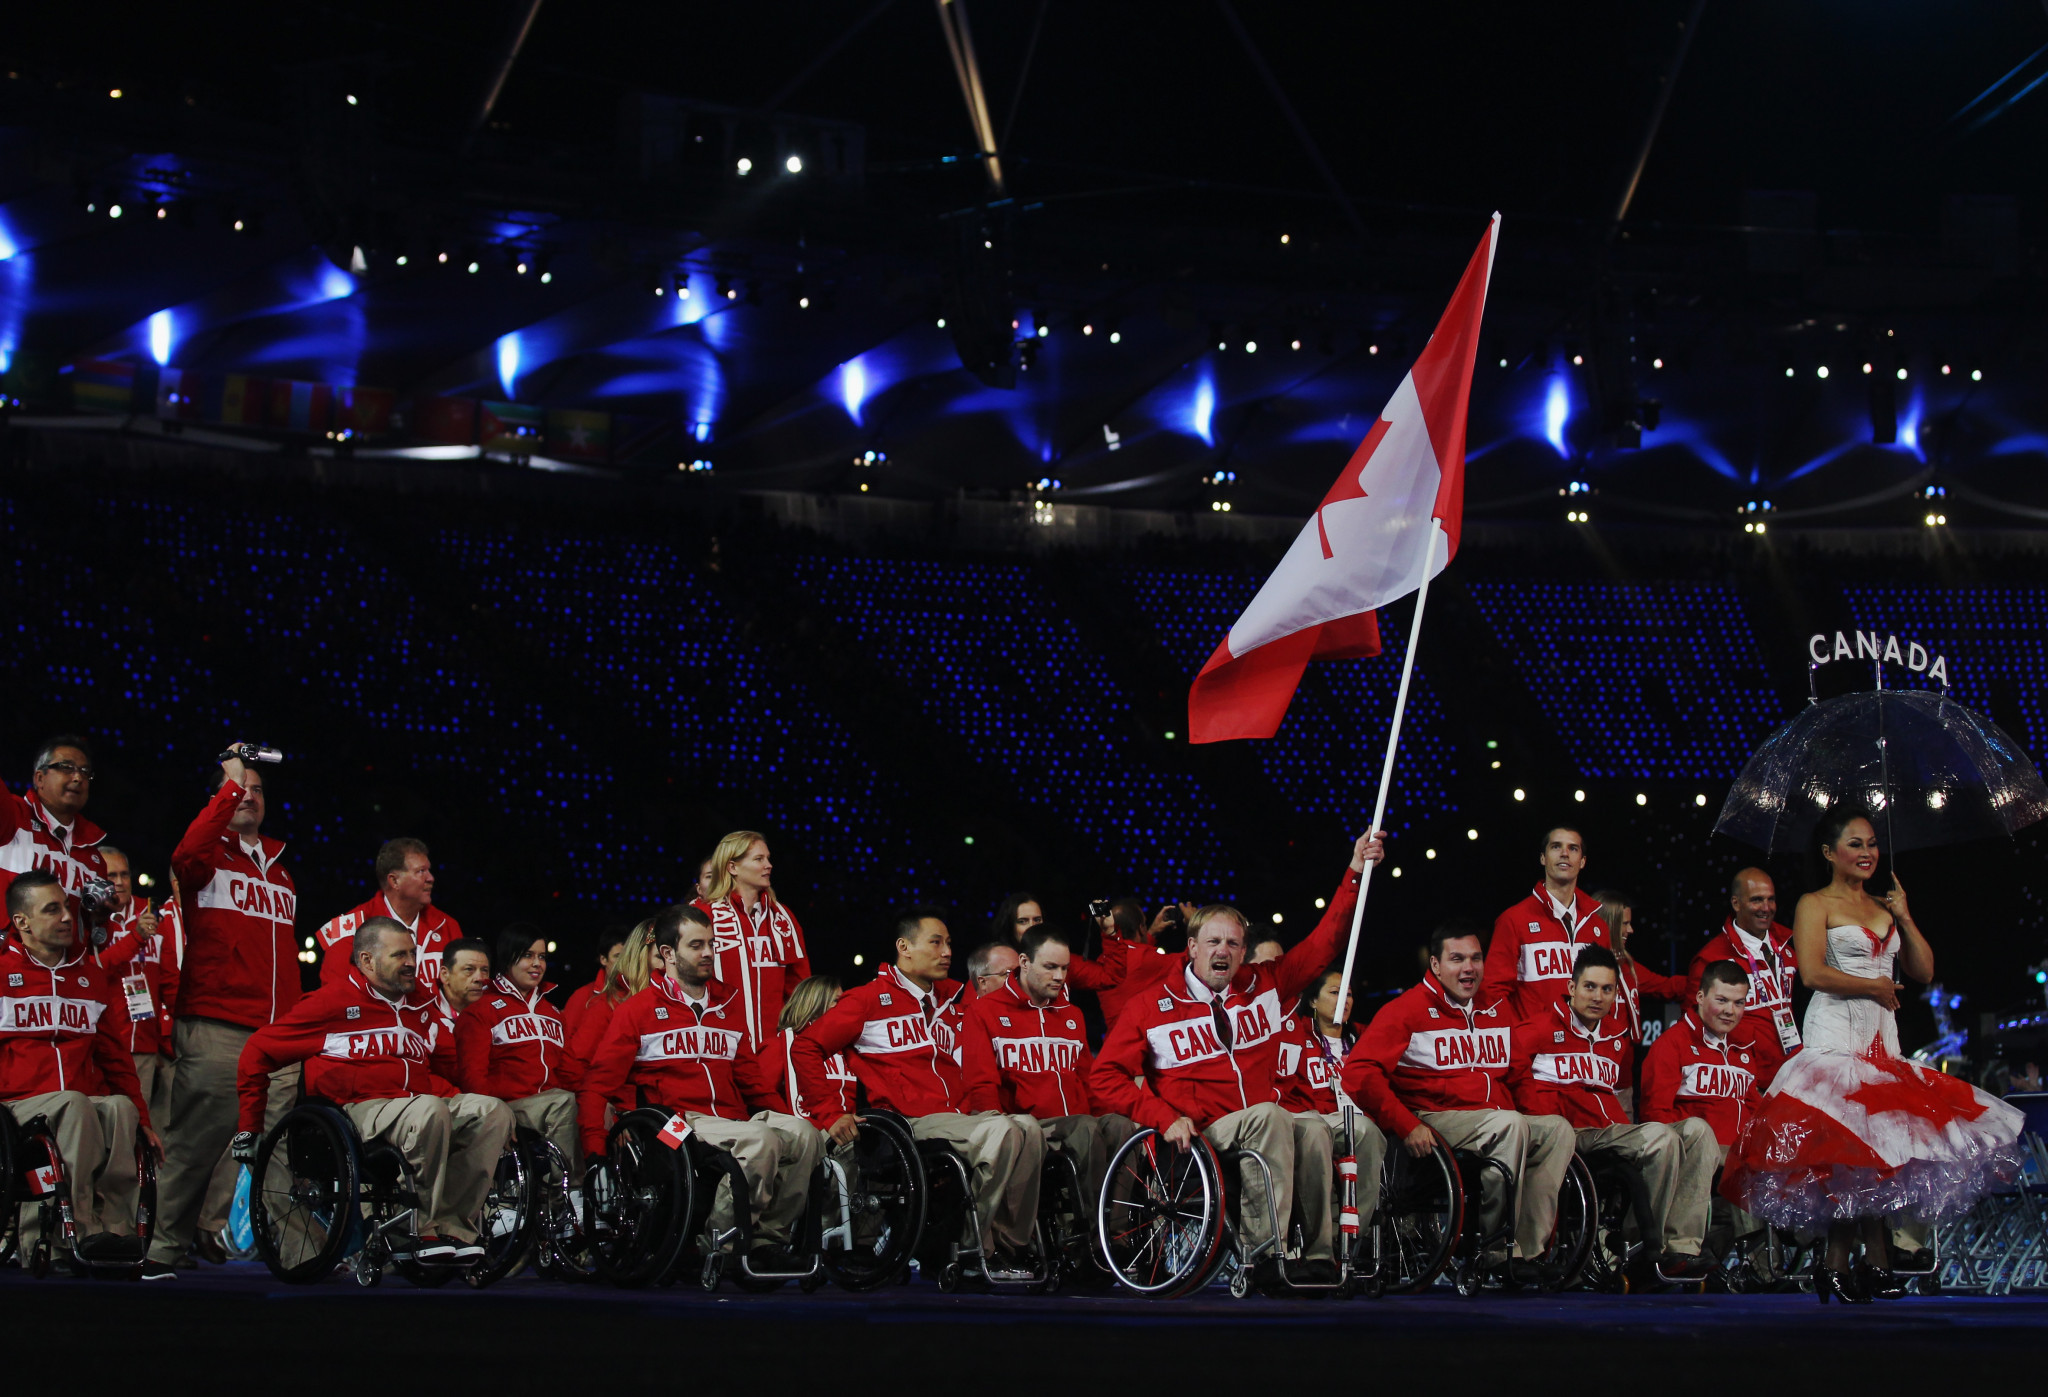 Fabien re-elected Canadian Paralympic Committee President